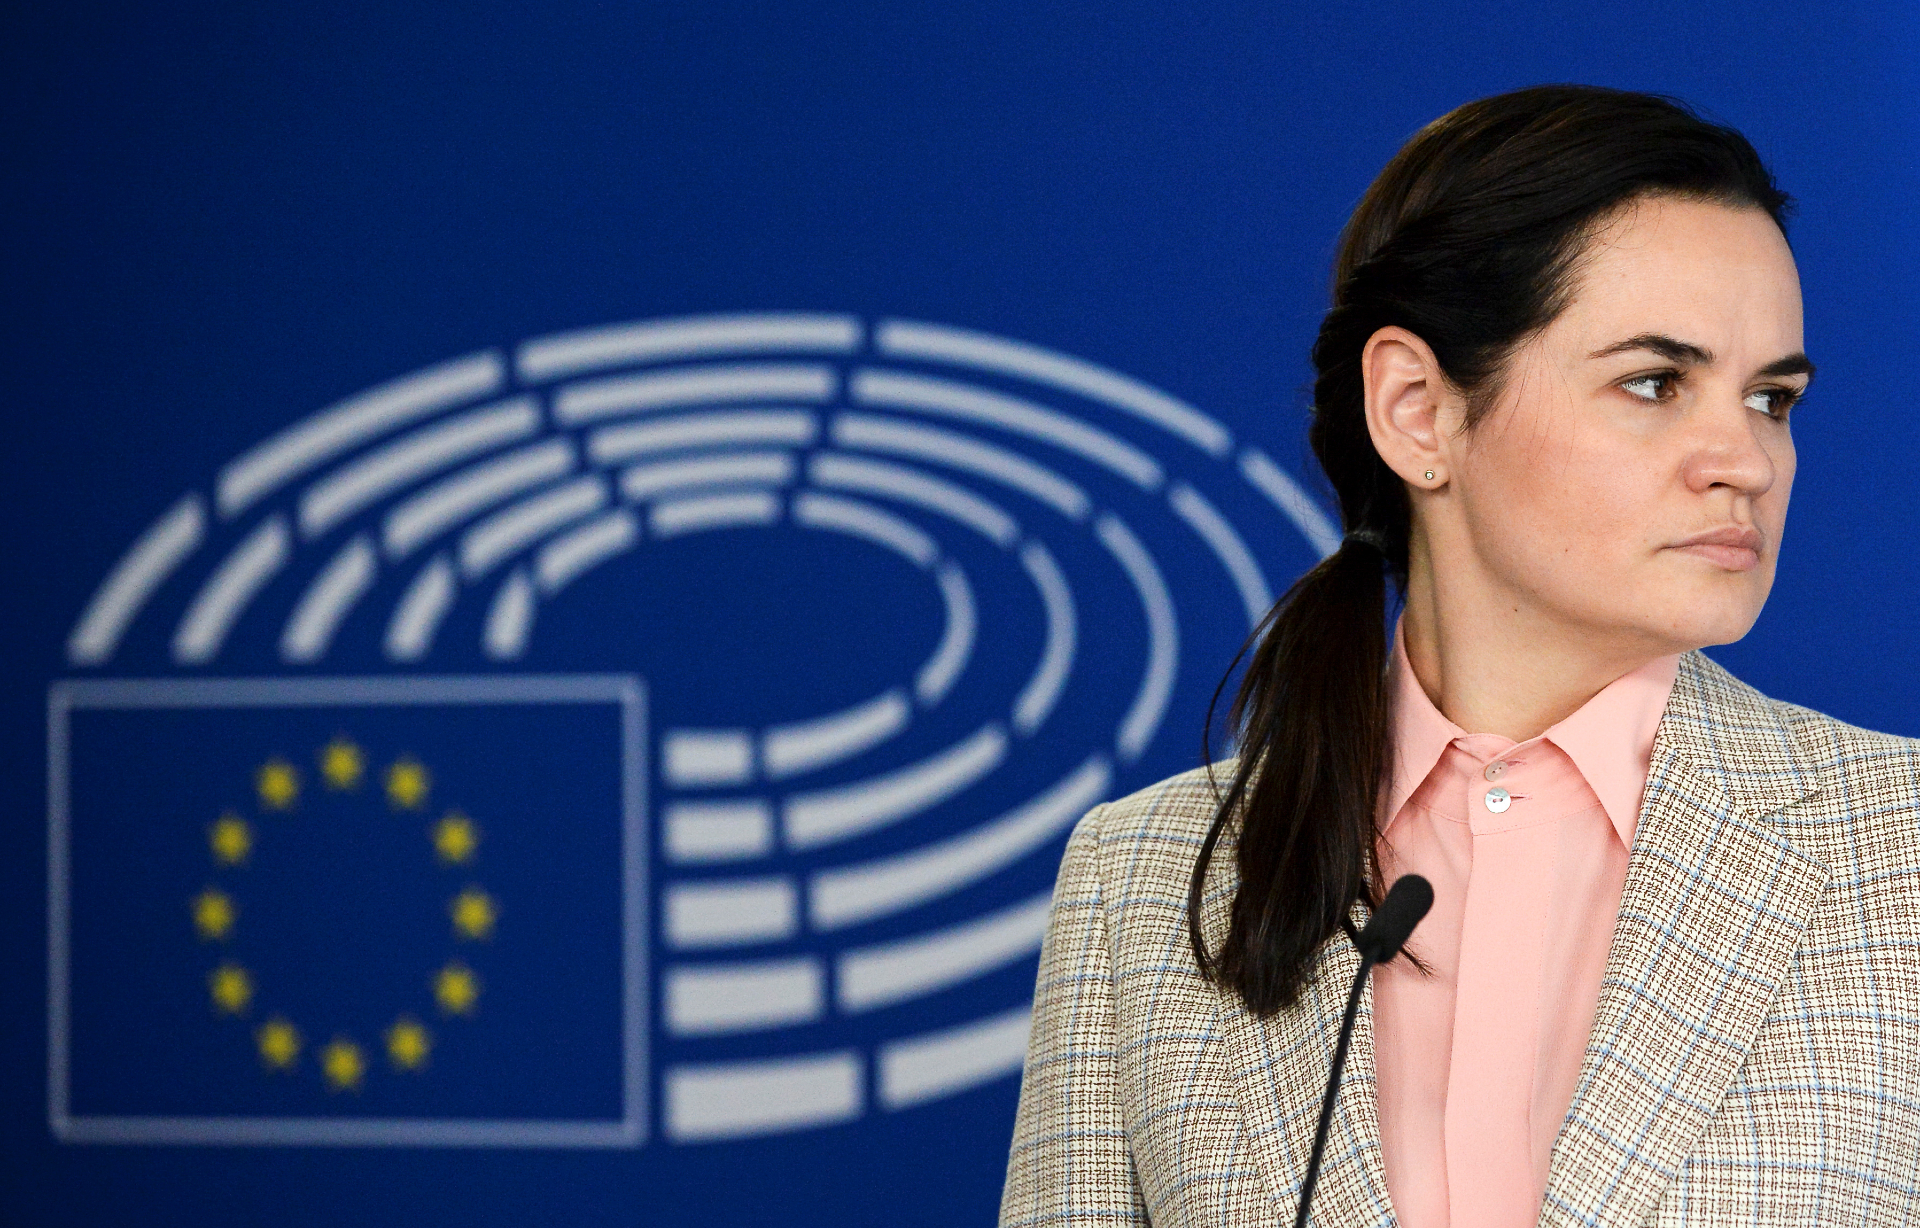 Photo: Belarusian opposition leader Sviatlana Tsikhanouskaya attends a news conference with European Parliament President David Sassoli (not pictured), in Brussels Belgium September 21, 2020. Credit: REUTERS/Johanna Geron/Pool